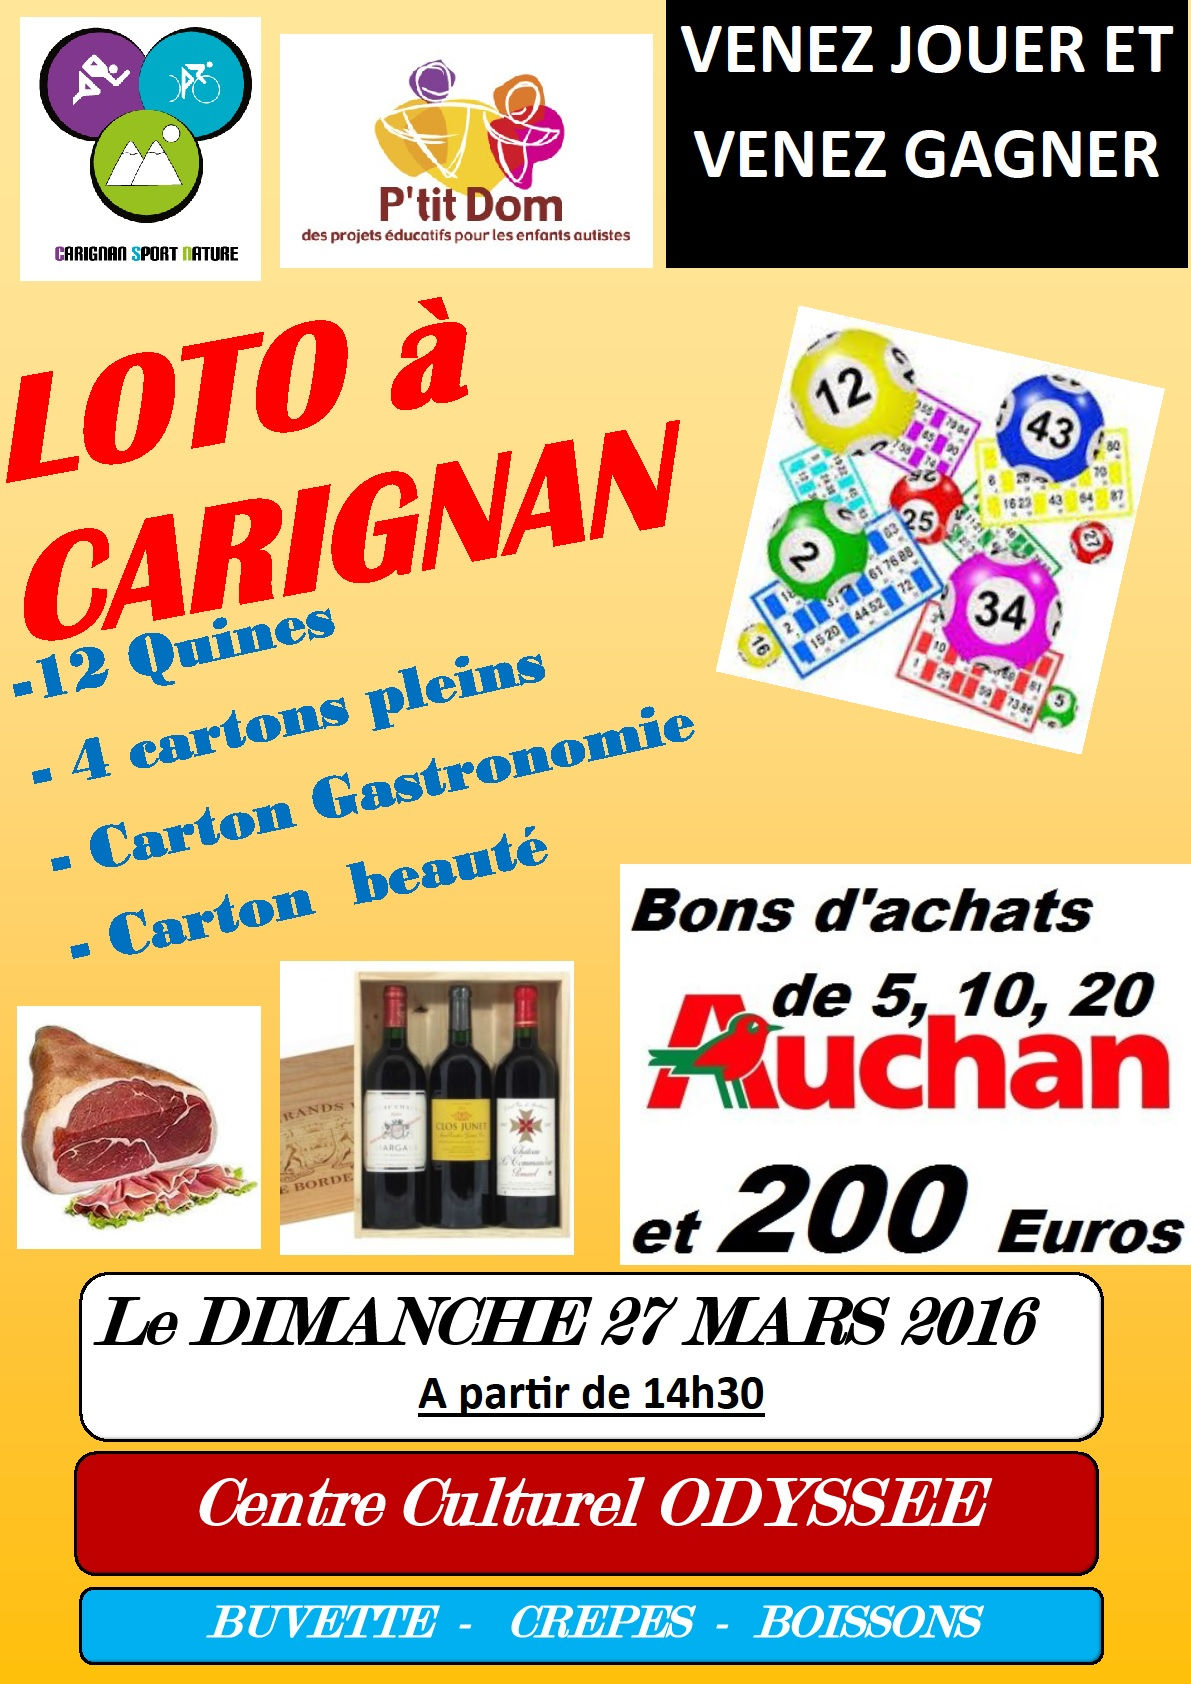 Loto CarignanSport Nature P'tit Dom